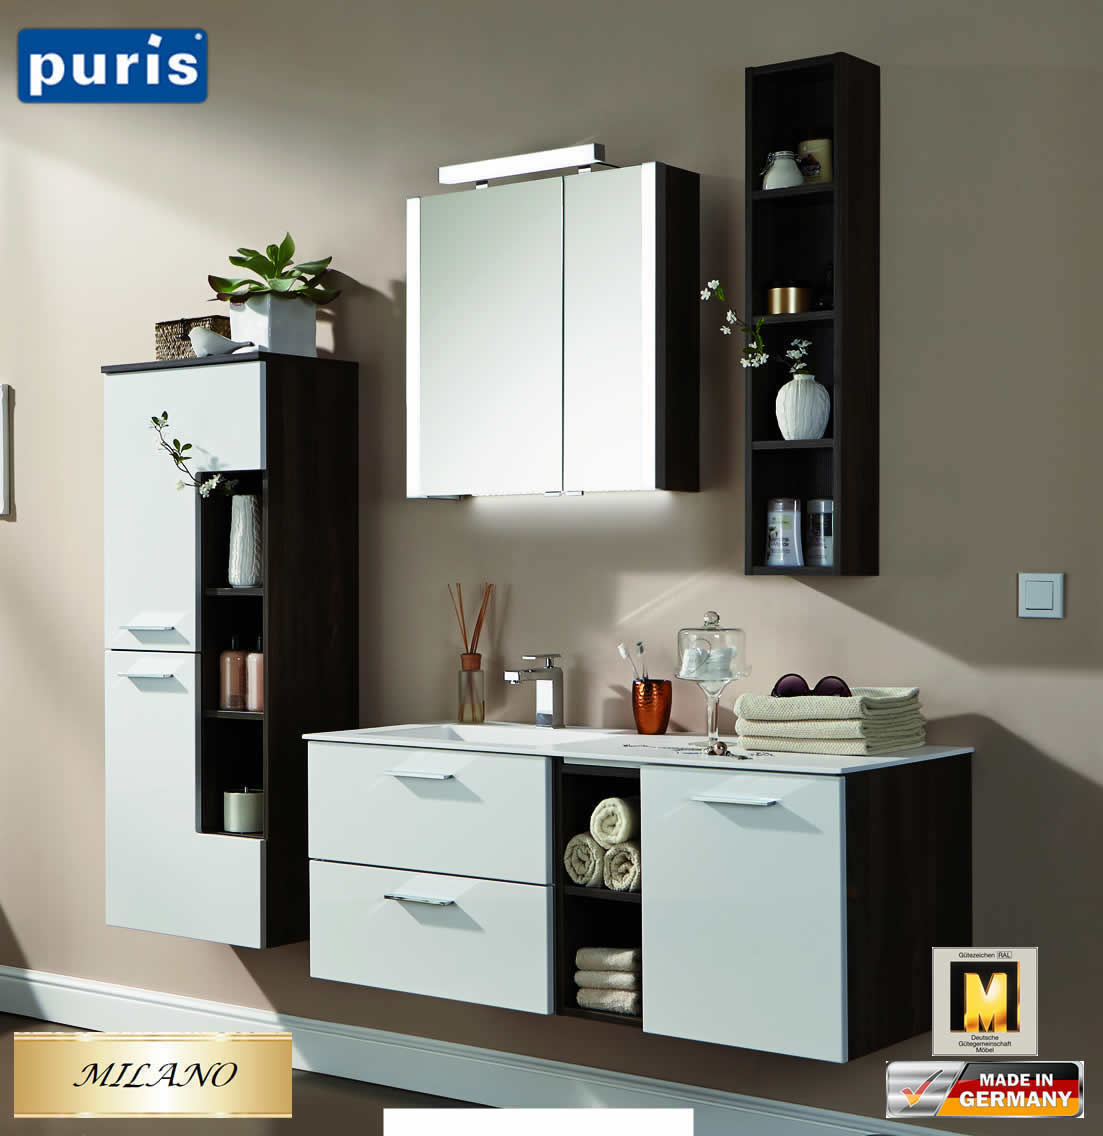 puris milano badm bel set 120 cm komplett fb03 komplett set impuls home. Black Bedroom Furniture Sets. Home Design Ideas